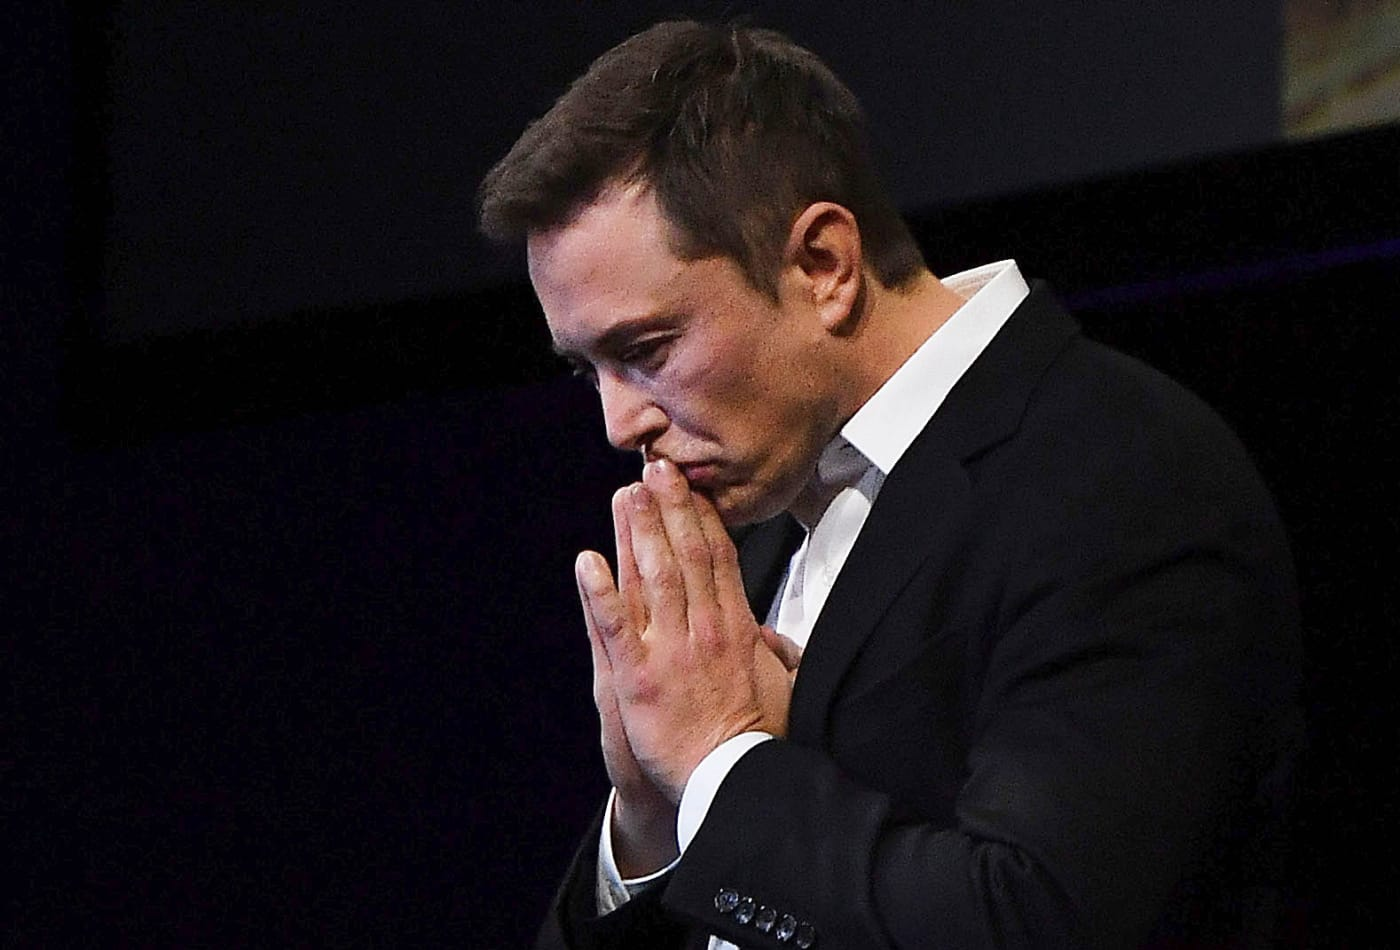 104763989-GettyImages-855370098-elon-musk